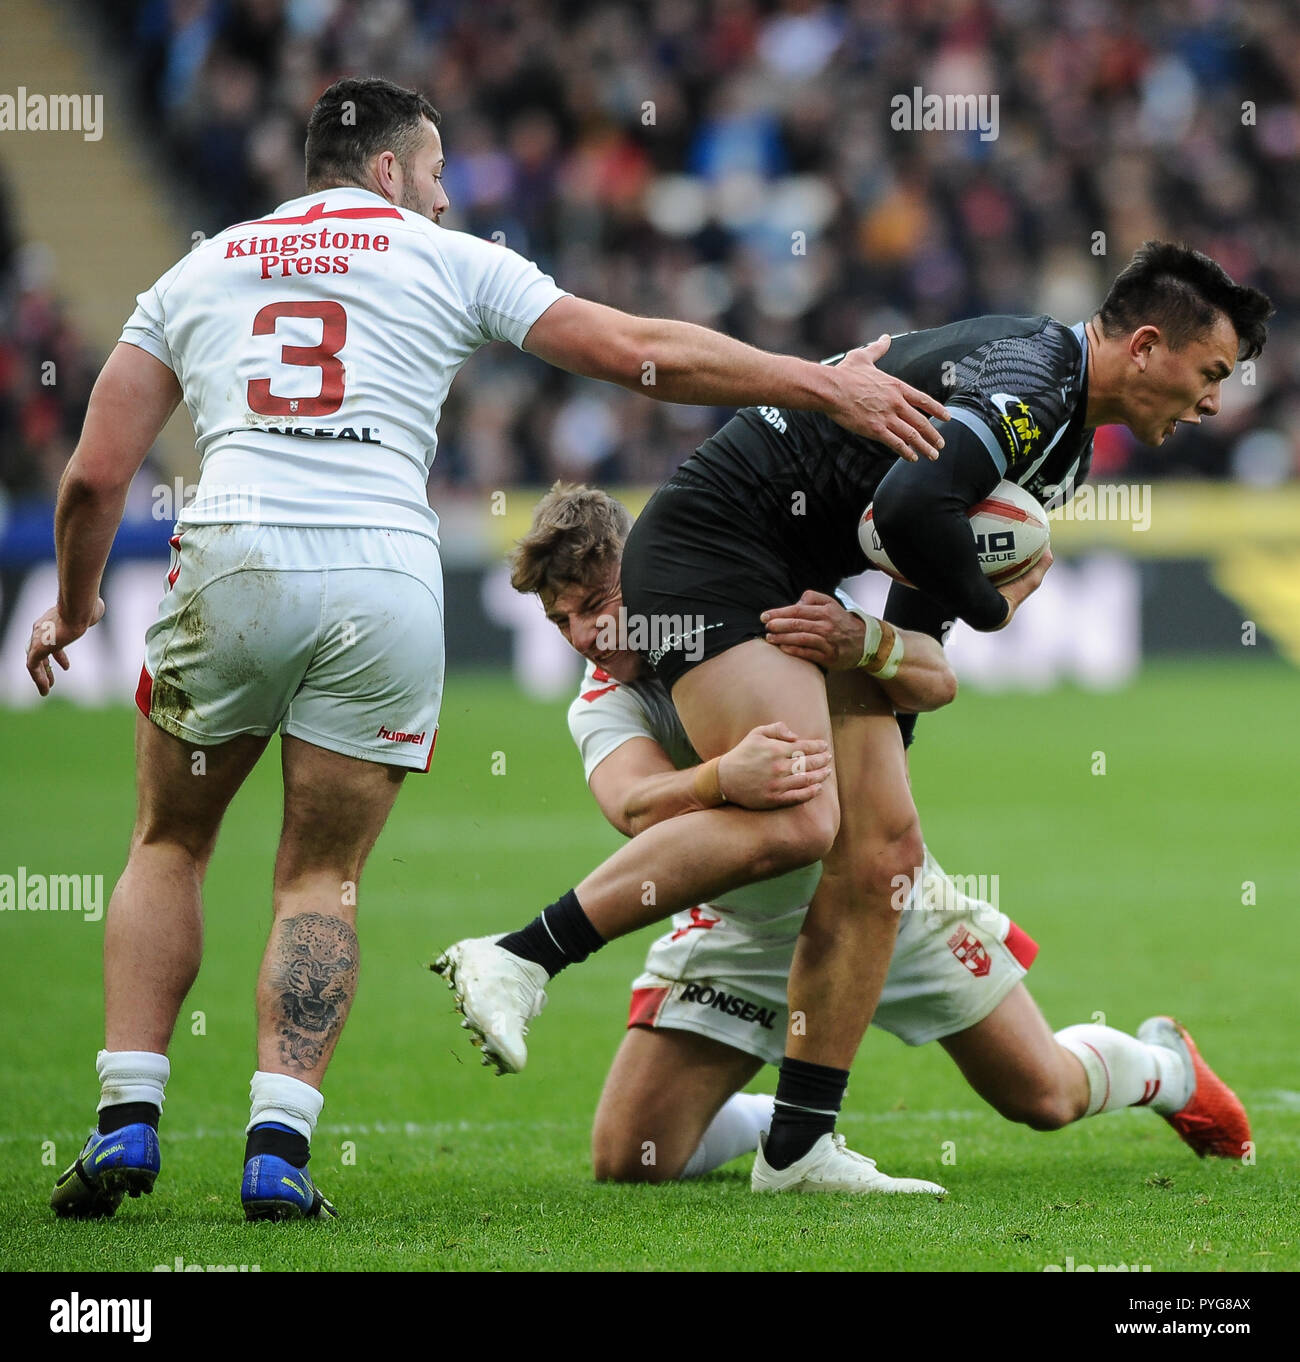 English Rugby Player To Nfl: Kcom Stock Photos & Kcom Stock Images